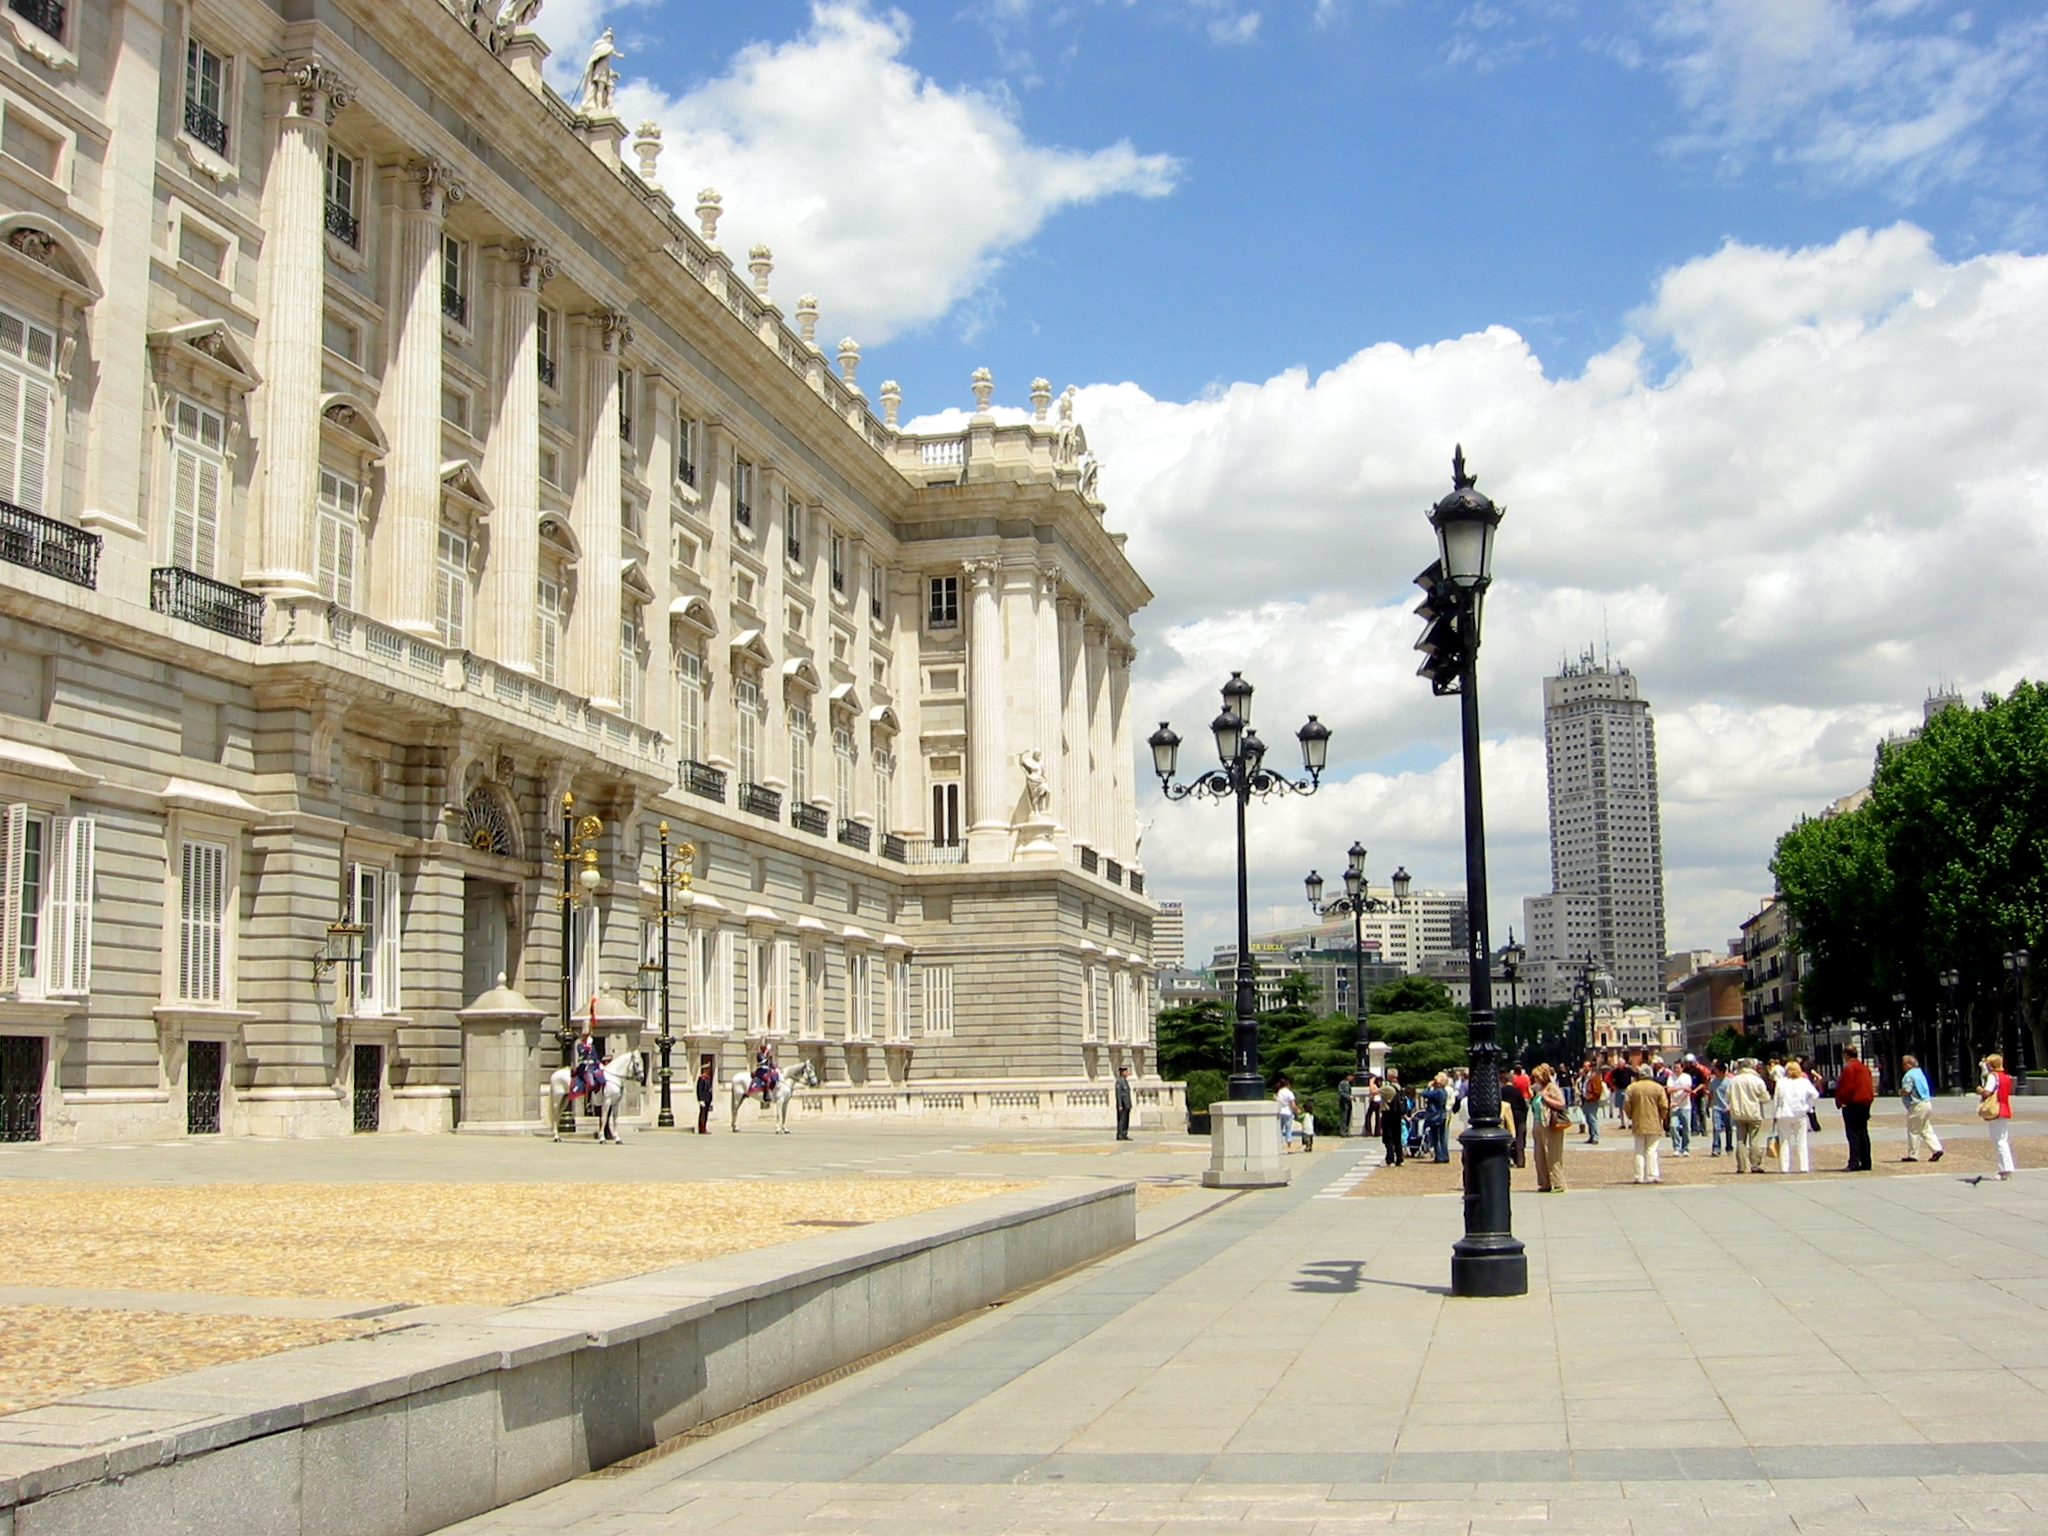 http://upload.wikimedia.org/wikipedia/commons/e/e0/Plaza_de_Oriente_(Madrid)_01.jpg